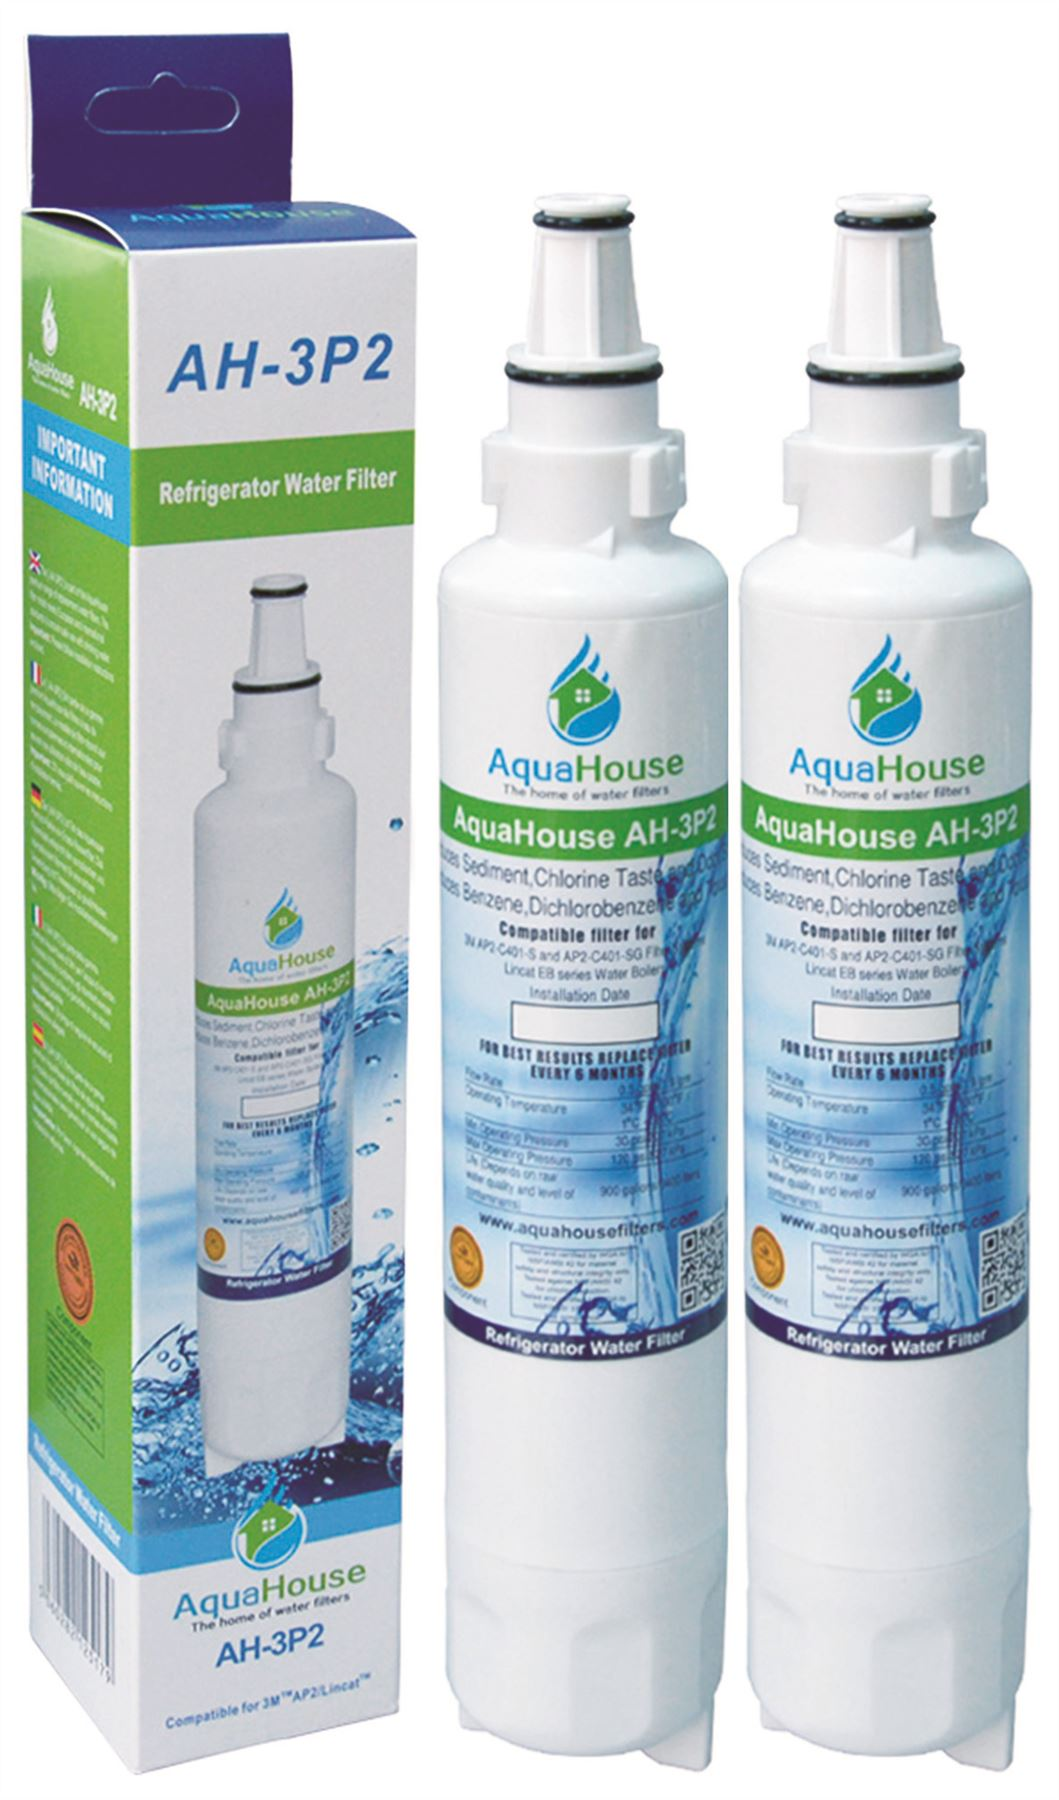 2x aquahouse Compatibile Filtro Acqua per Lamona Leisure hja6000 HJA6100 hjaj6100